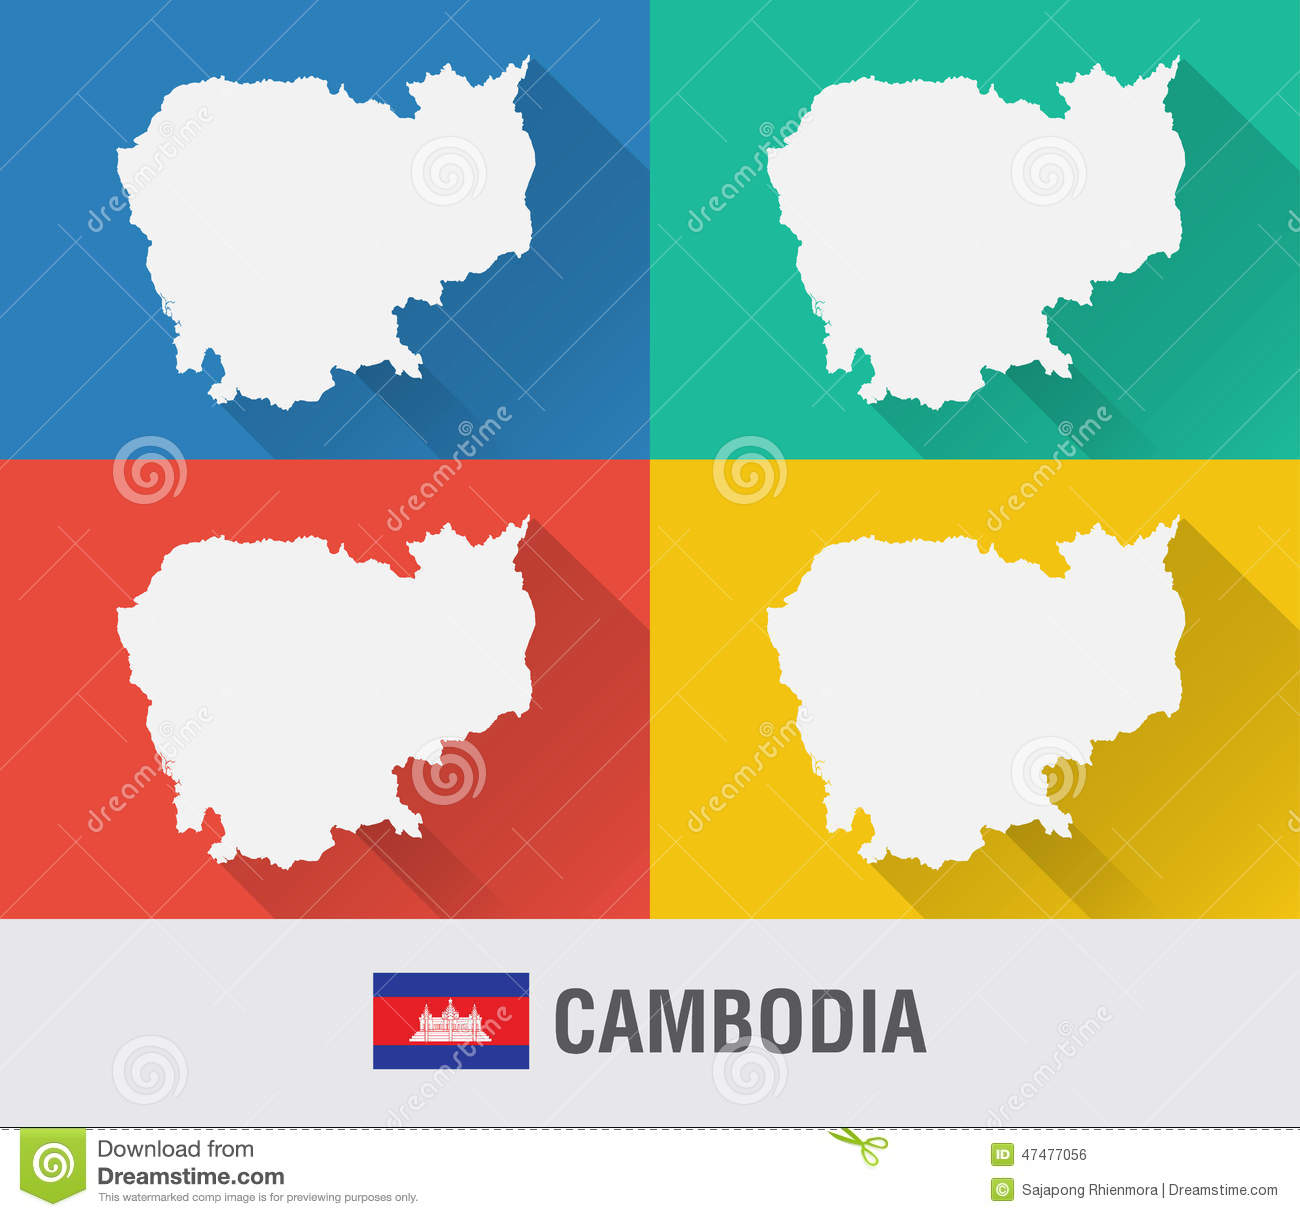 Cambodia World Map In Flat Style With 4 Colors. Stock Photo - Image ...